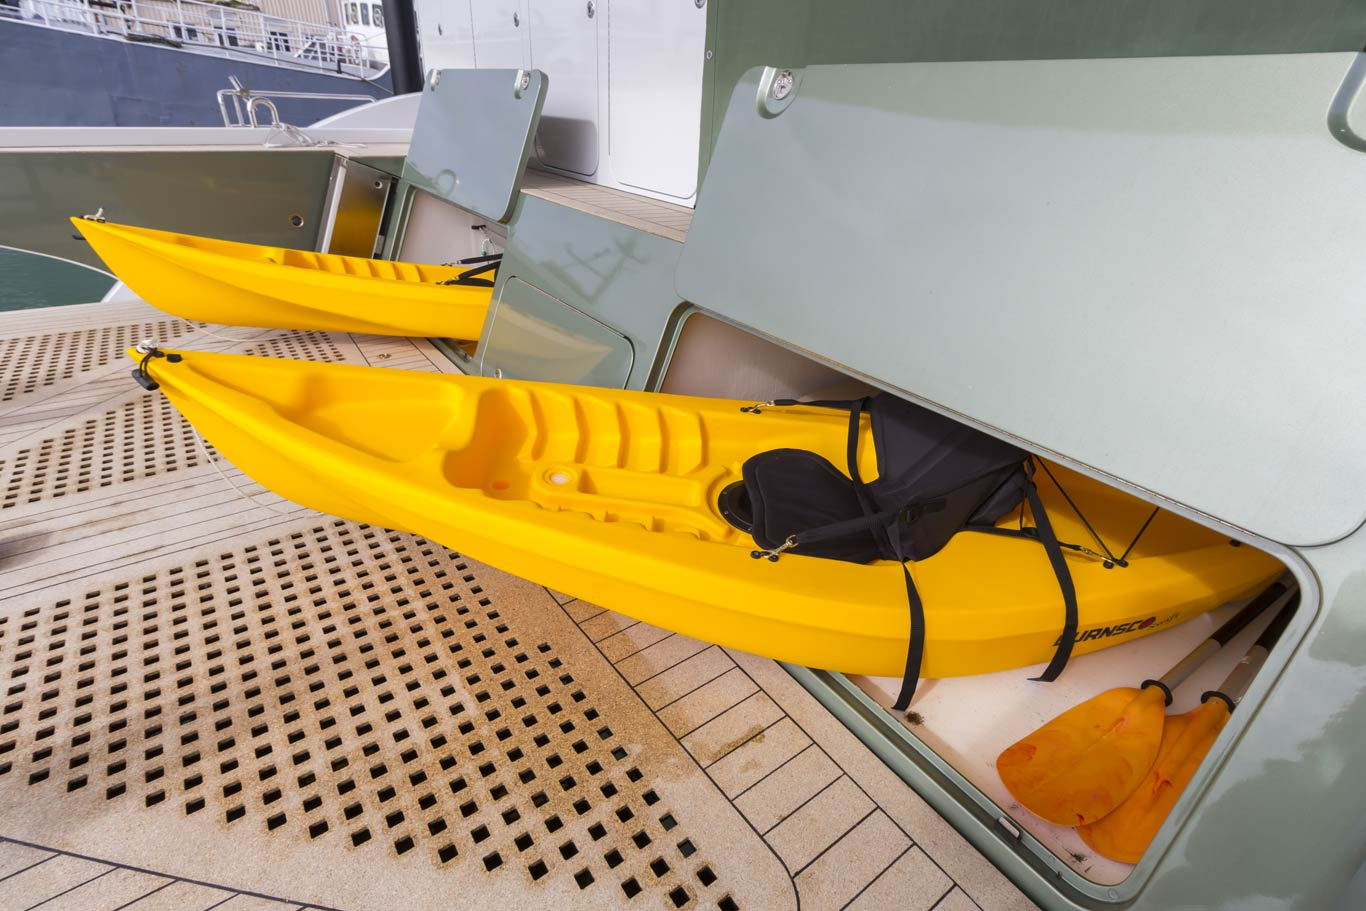 Dual kayak lockers concealed in the transom face store two kayaks up to 5m in length, creating the opportunity for adventures at a more relaxed pace